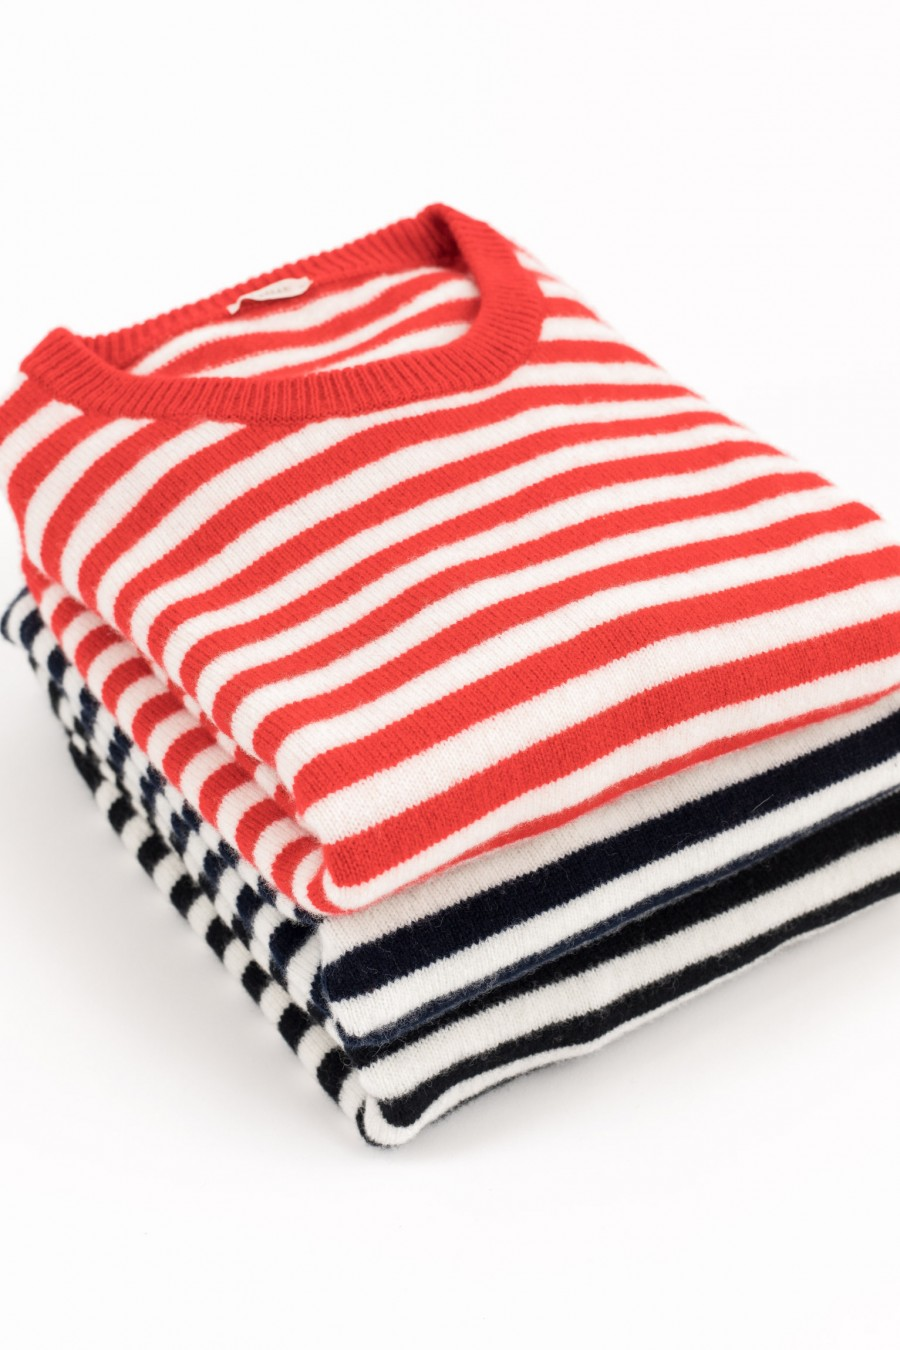 Soft striped pullovers